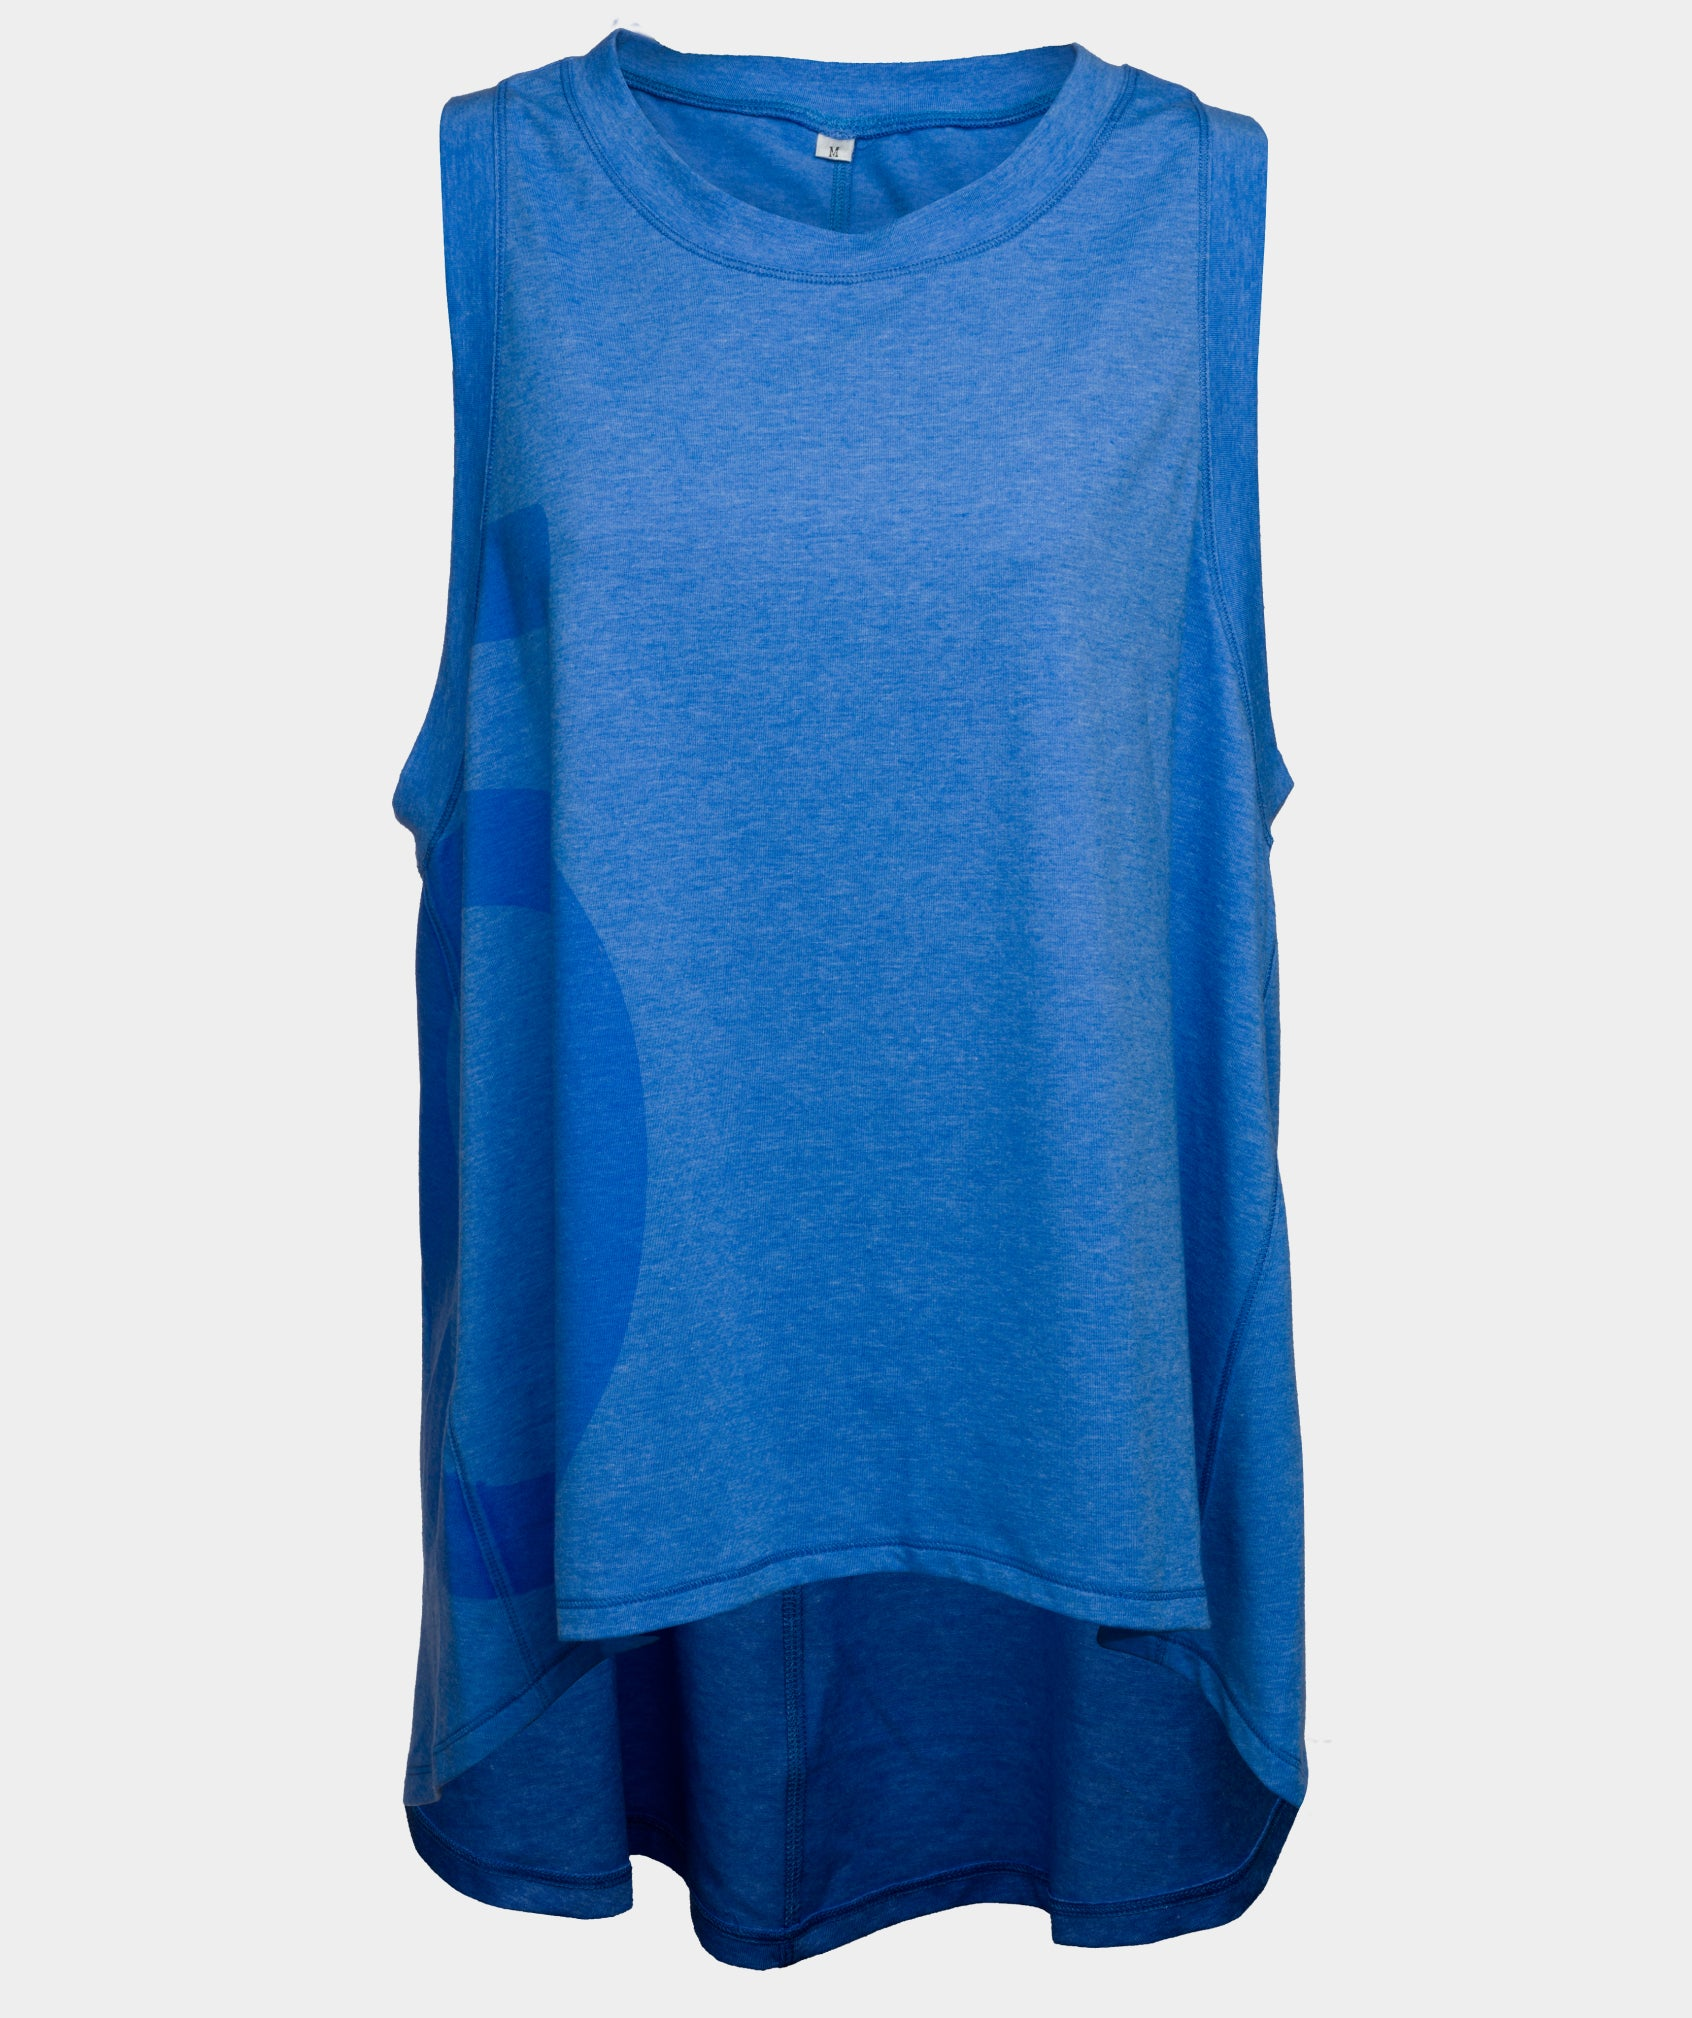 Ready-to-Move Top